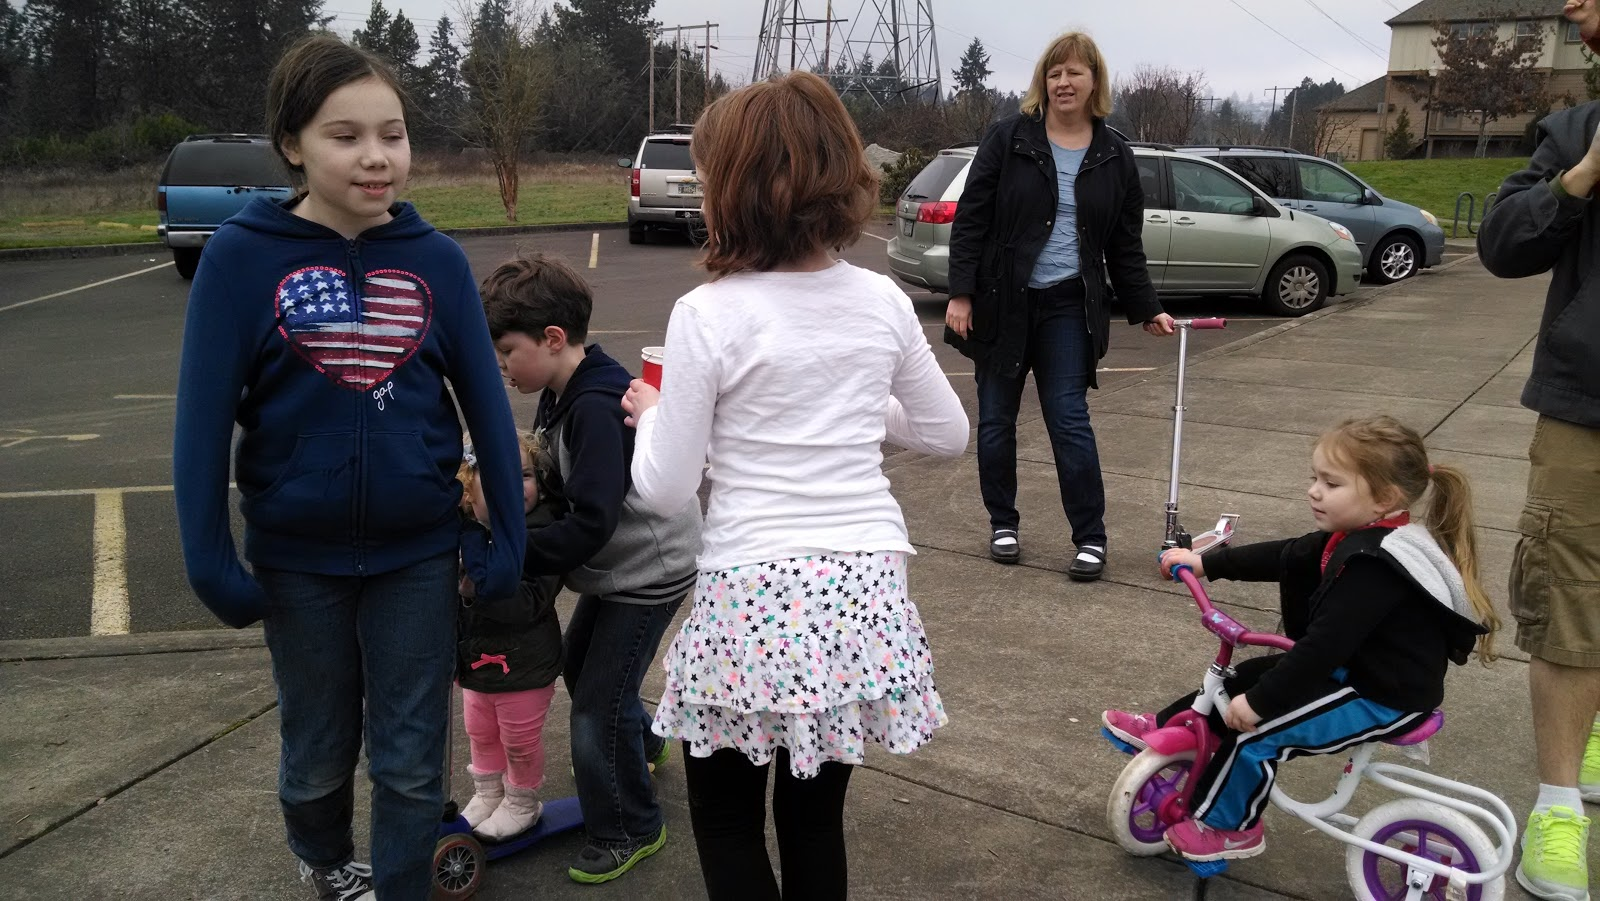 dearest place tigard adventures erika bushman and her kids kim deaver her son and then her dad phil kim barlow her kids and darian jones his kids